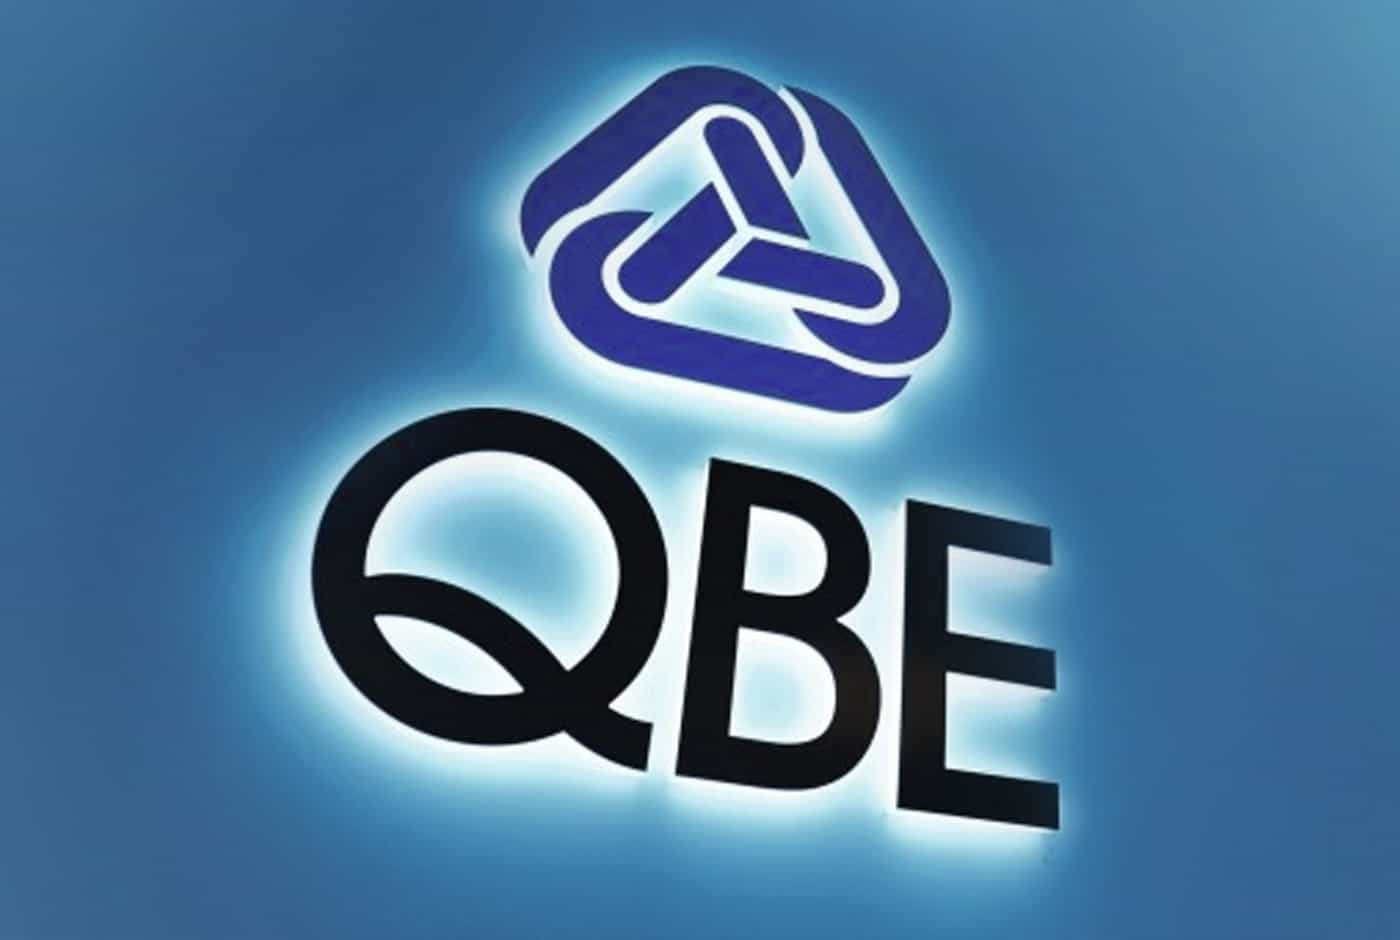 QBE unveils dynamic new underwriting structure to provide compelling product offering to customers and brokers